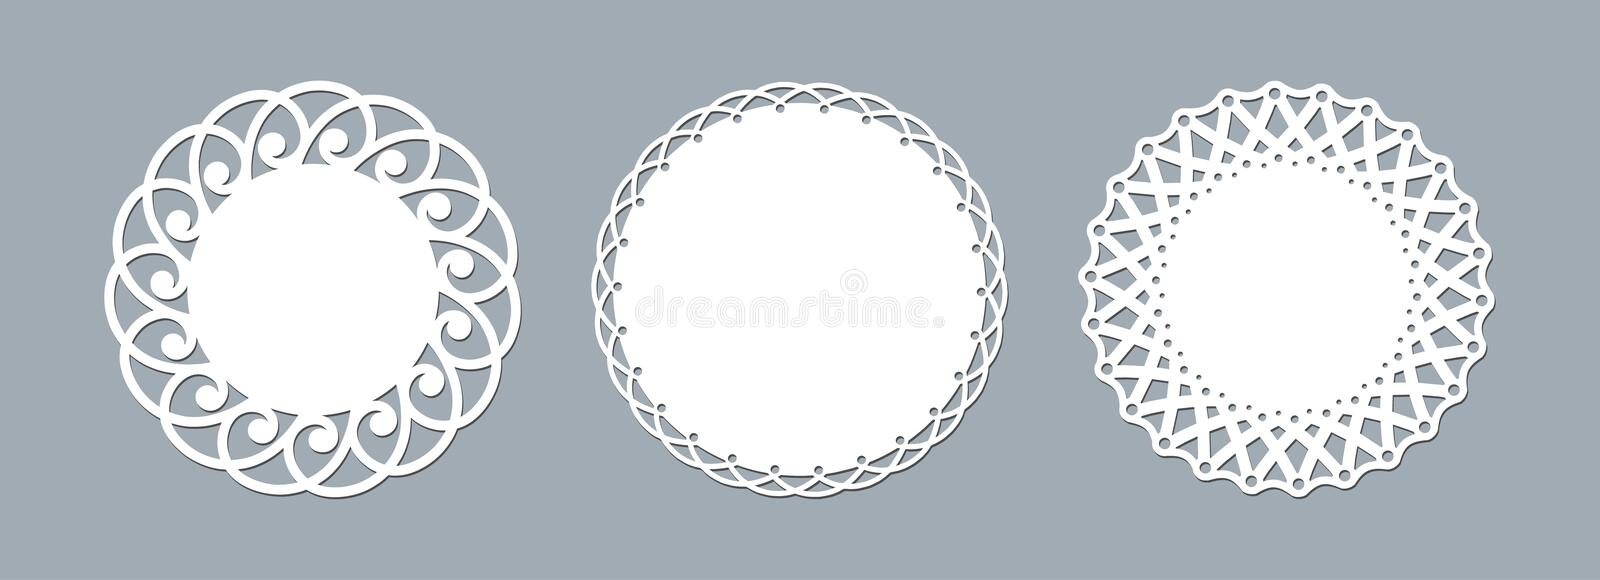 Lace doily laser cut paper Round pattern ornament Template mockup of a round white lace doily napkin lasercut frame Set Design. Lace doily laser cut paper. Round vector illustration